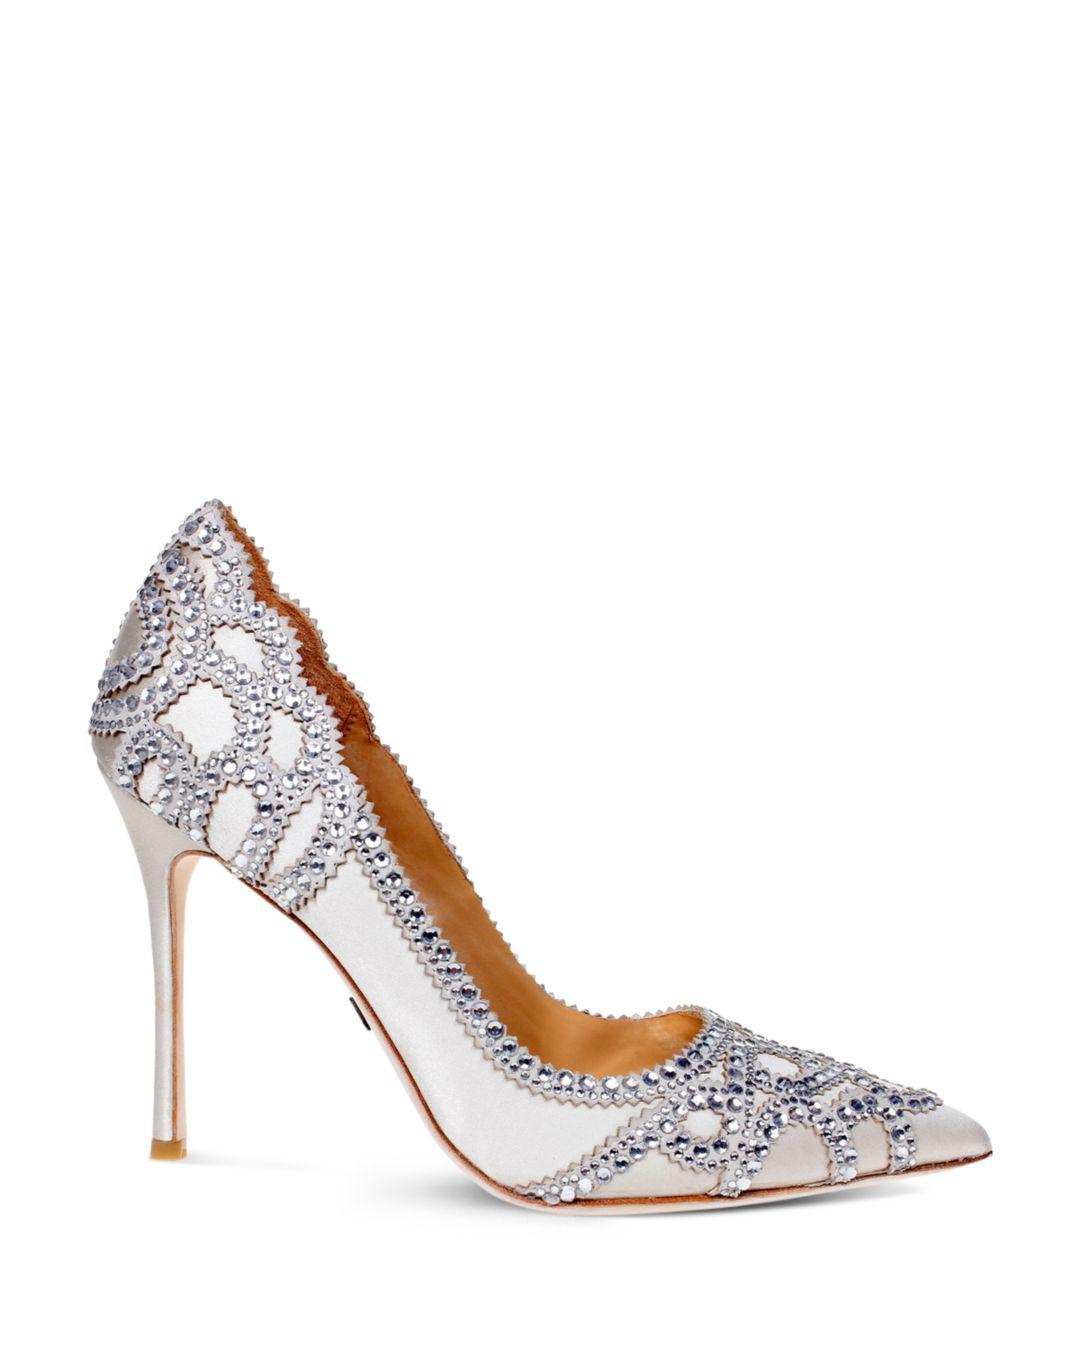 f3149aefa002 Lyst - Badgley Mischka Rouge Embellished Pointed Toe Pumps in White